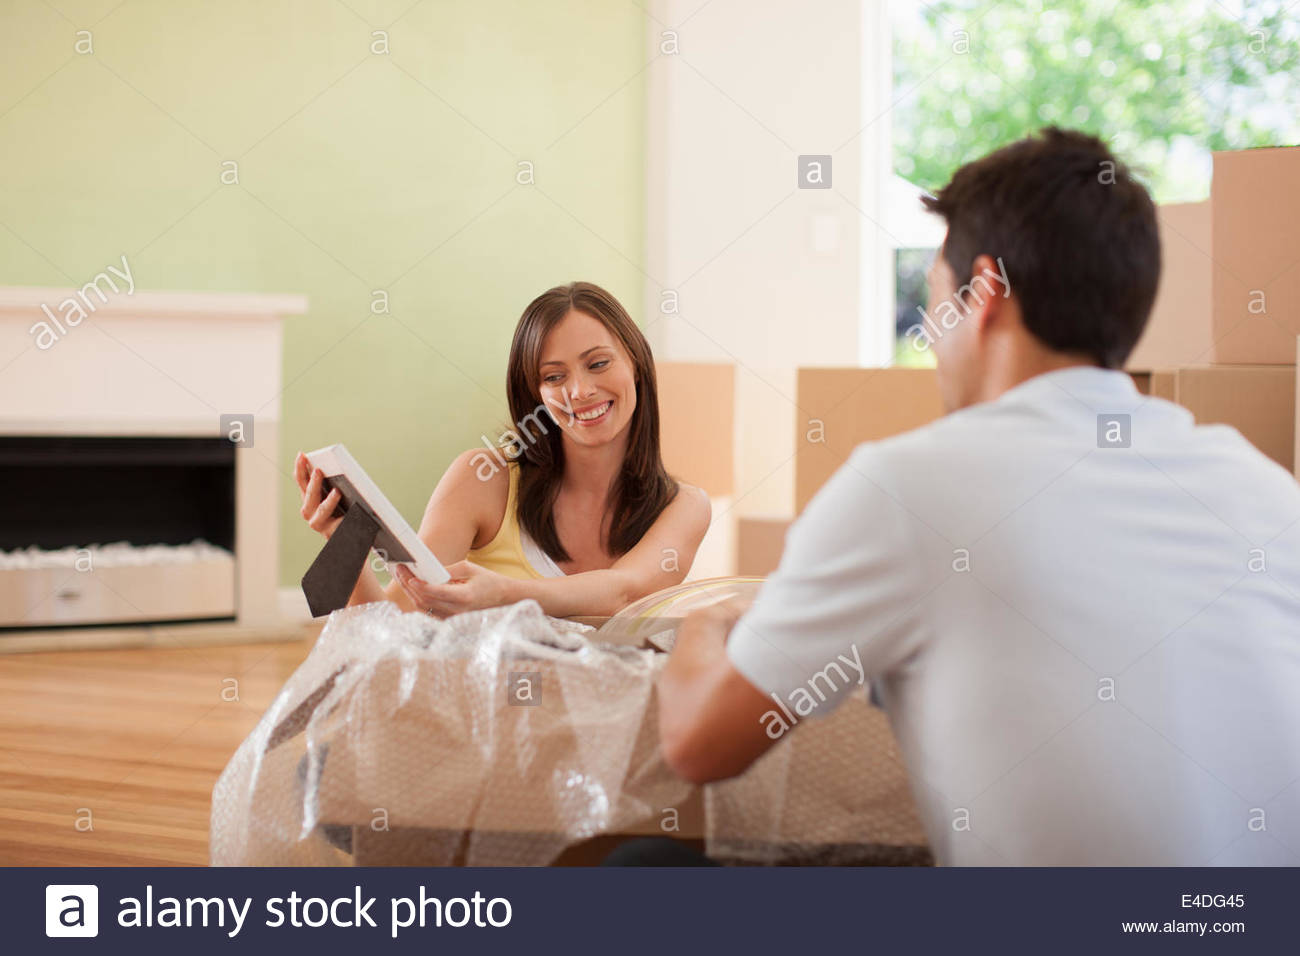 Couple unpacking photos in new house Photo Stock